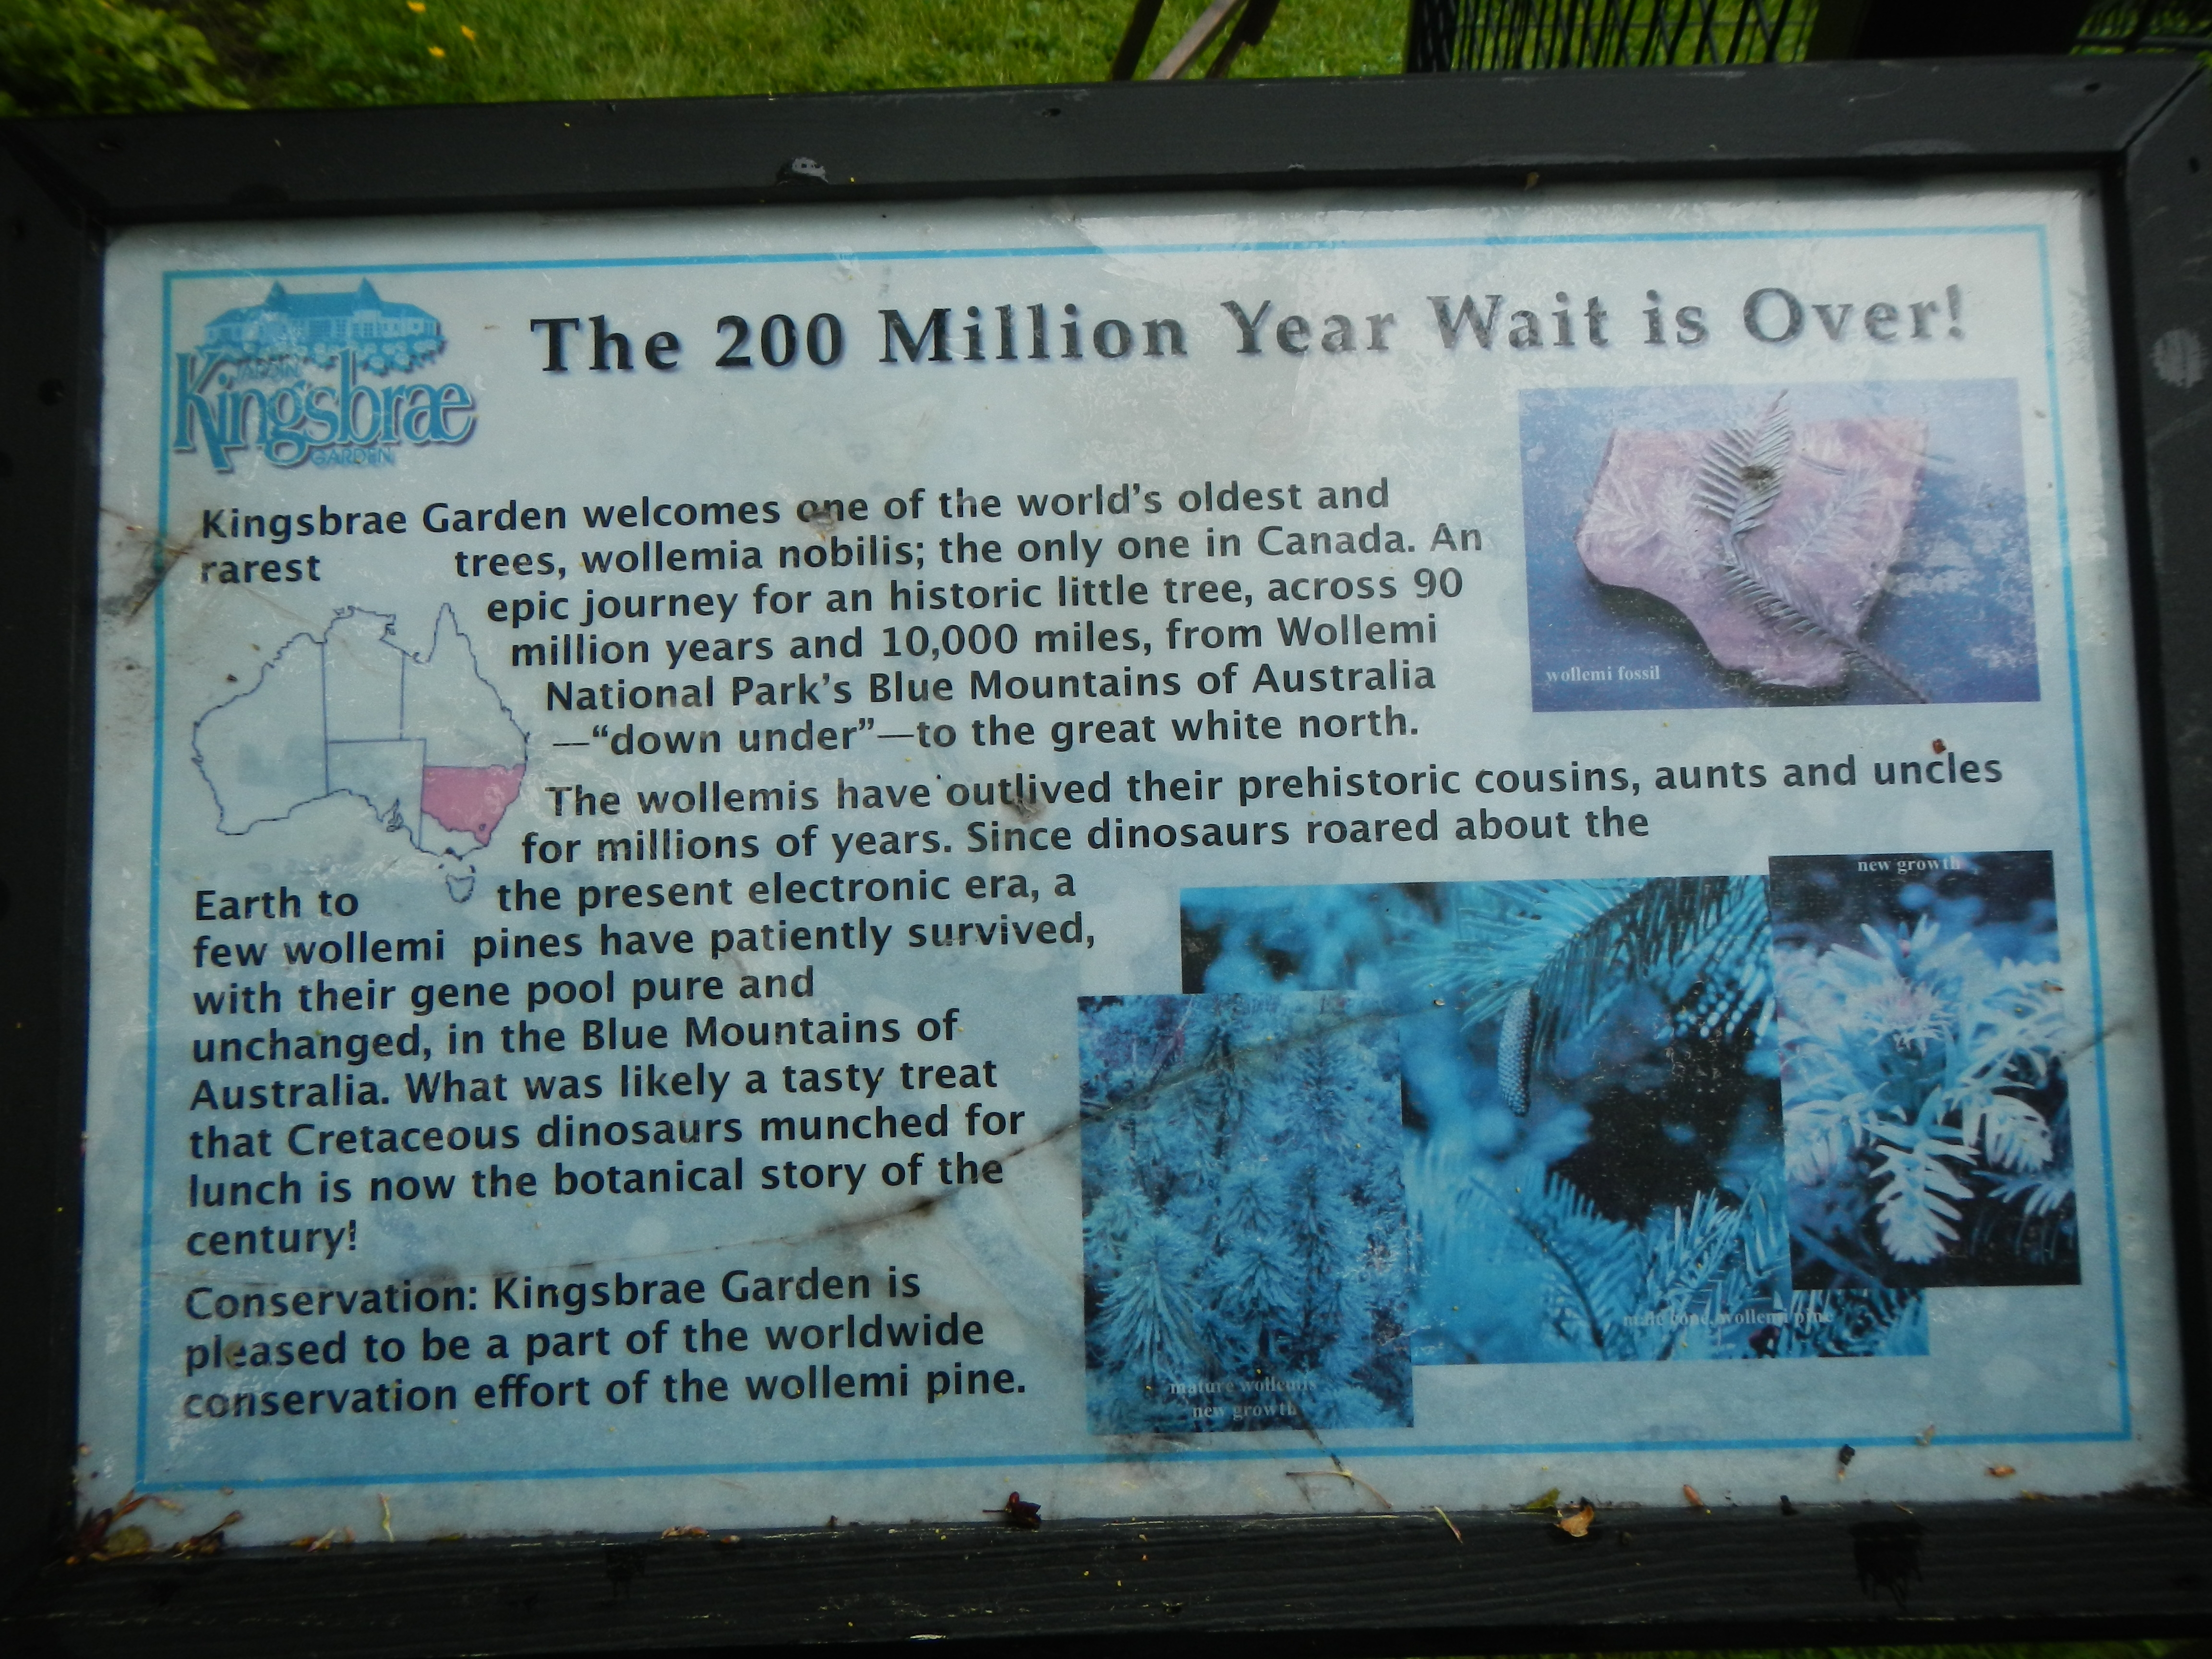 The 200 Million Year Wait is Over! Marker